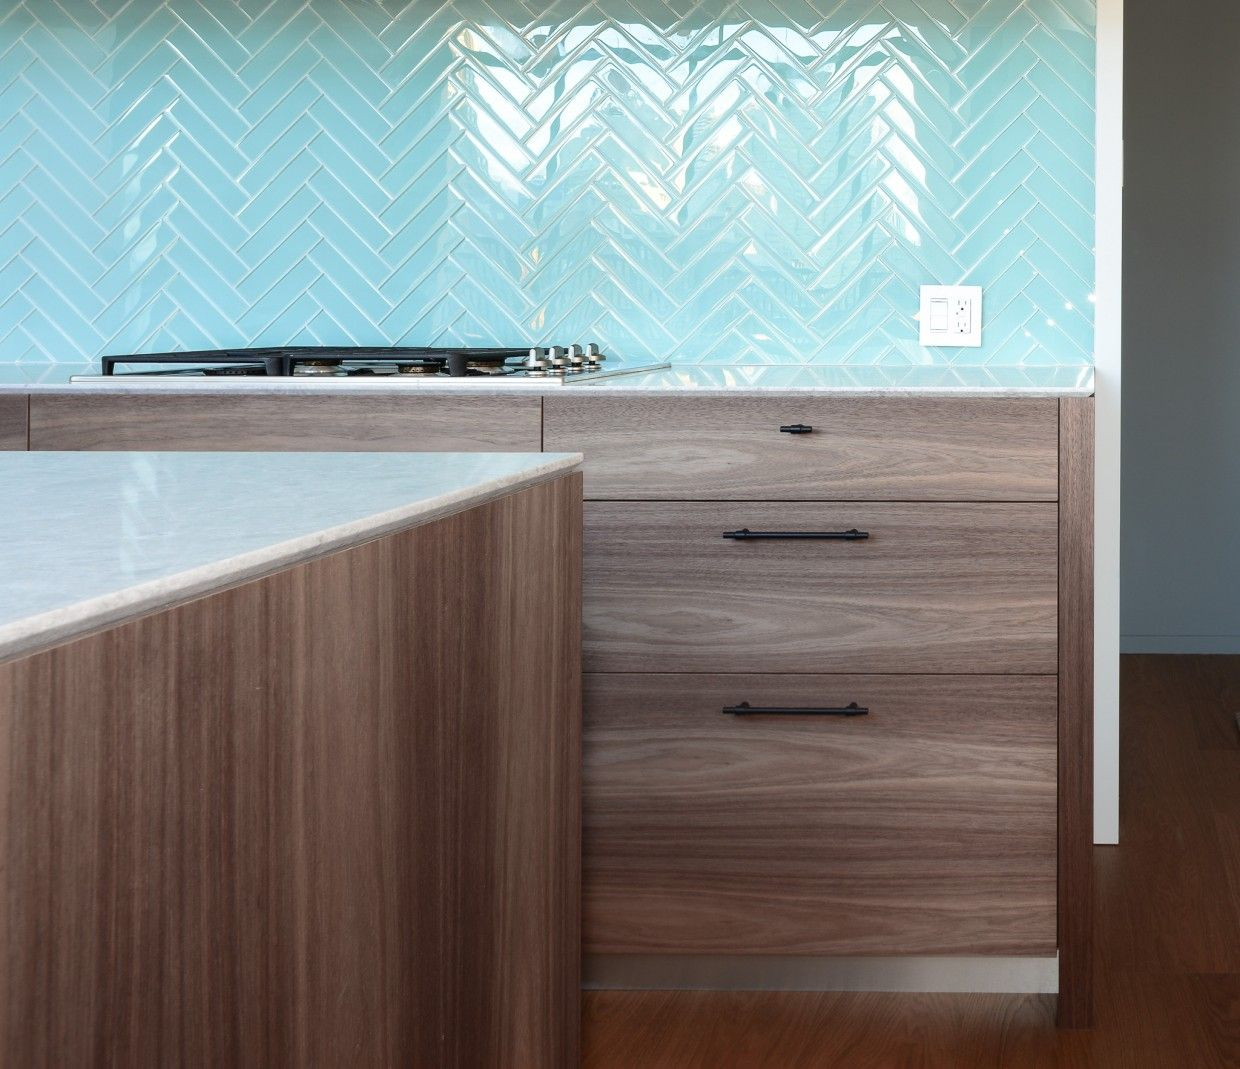 Beautiful aqua color glass tile kitchen backsplash in herringbone ...